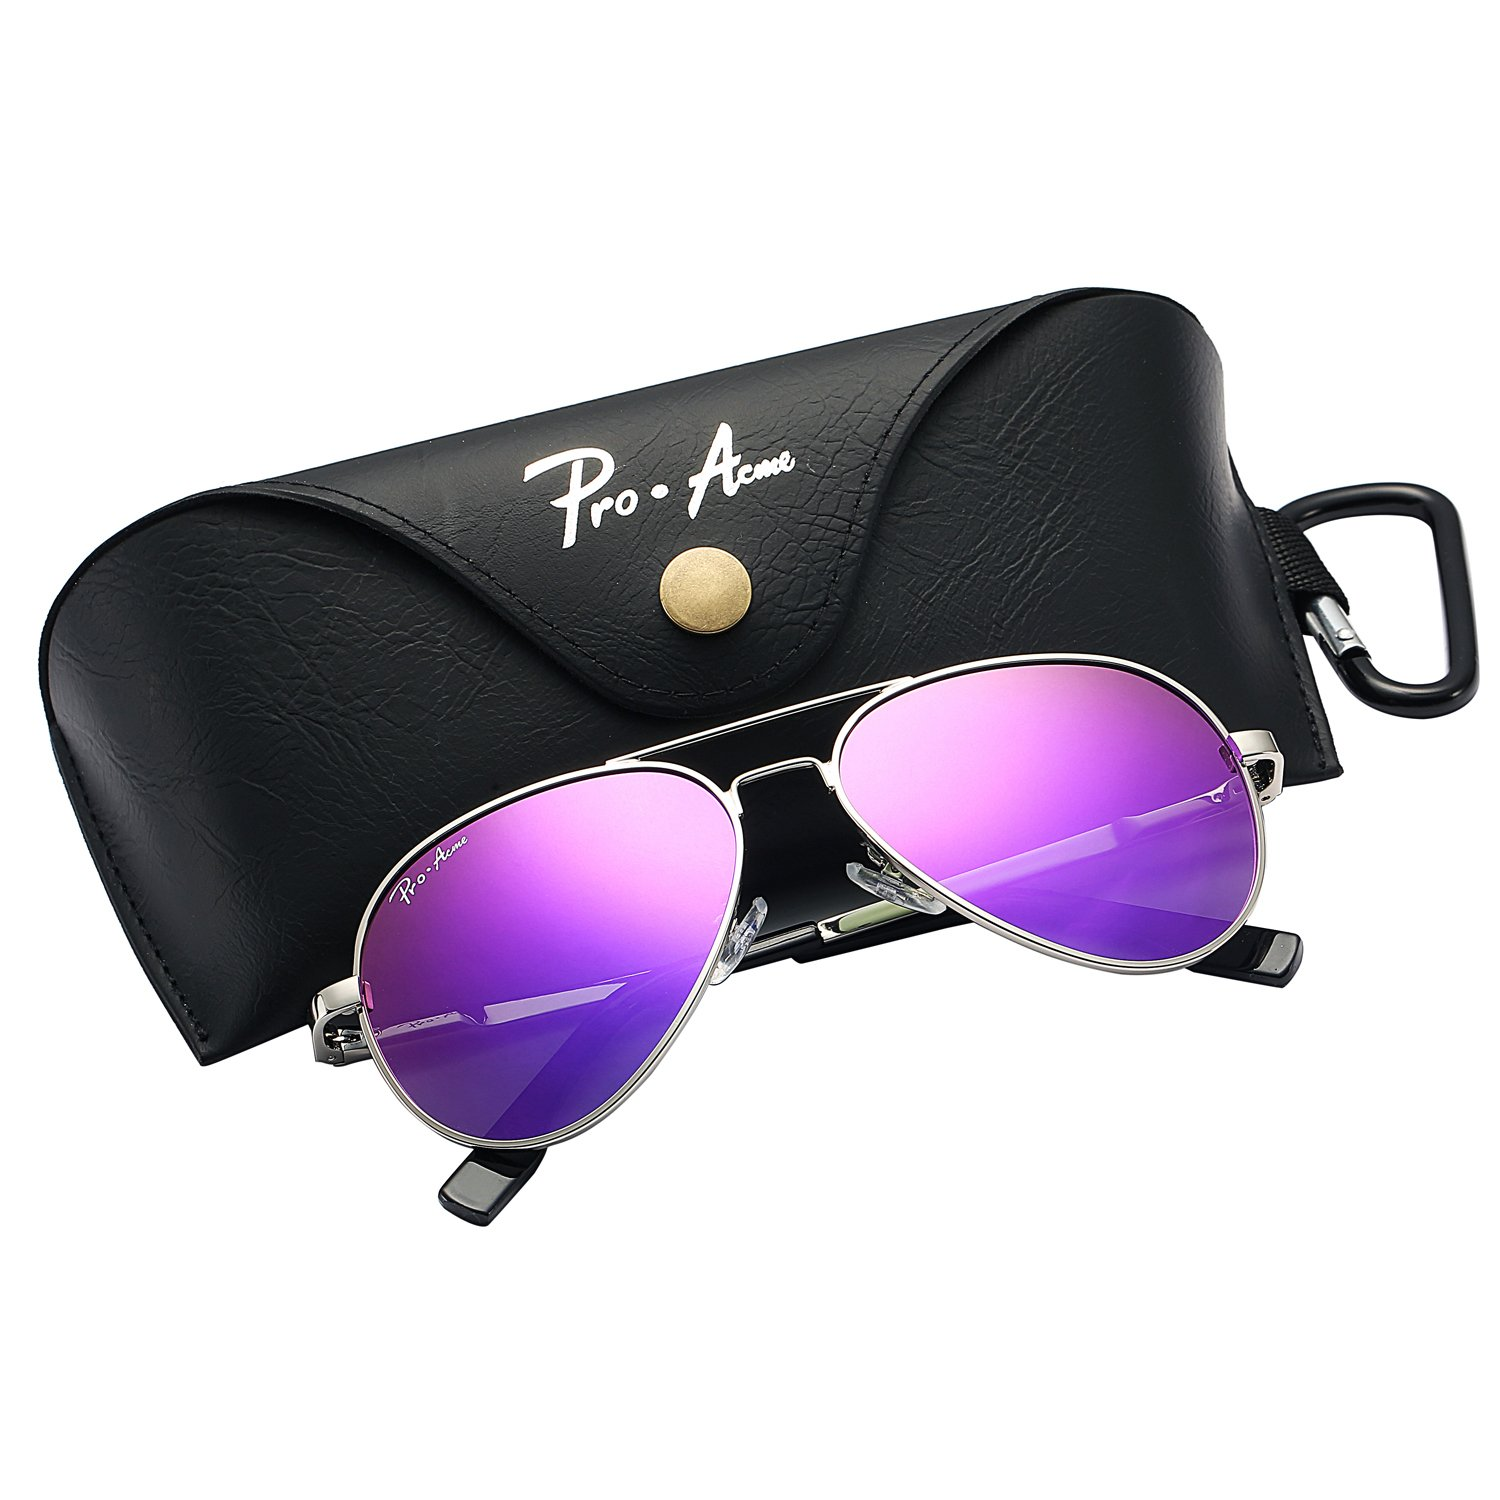 Pro Acme Small Polarized Aviator Sunglasses for Kids and Youth Age 5-18 (Silver Frame/Purple Mirrored Lens)